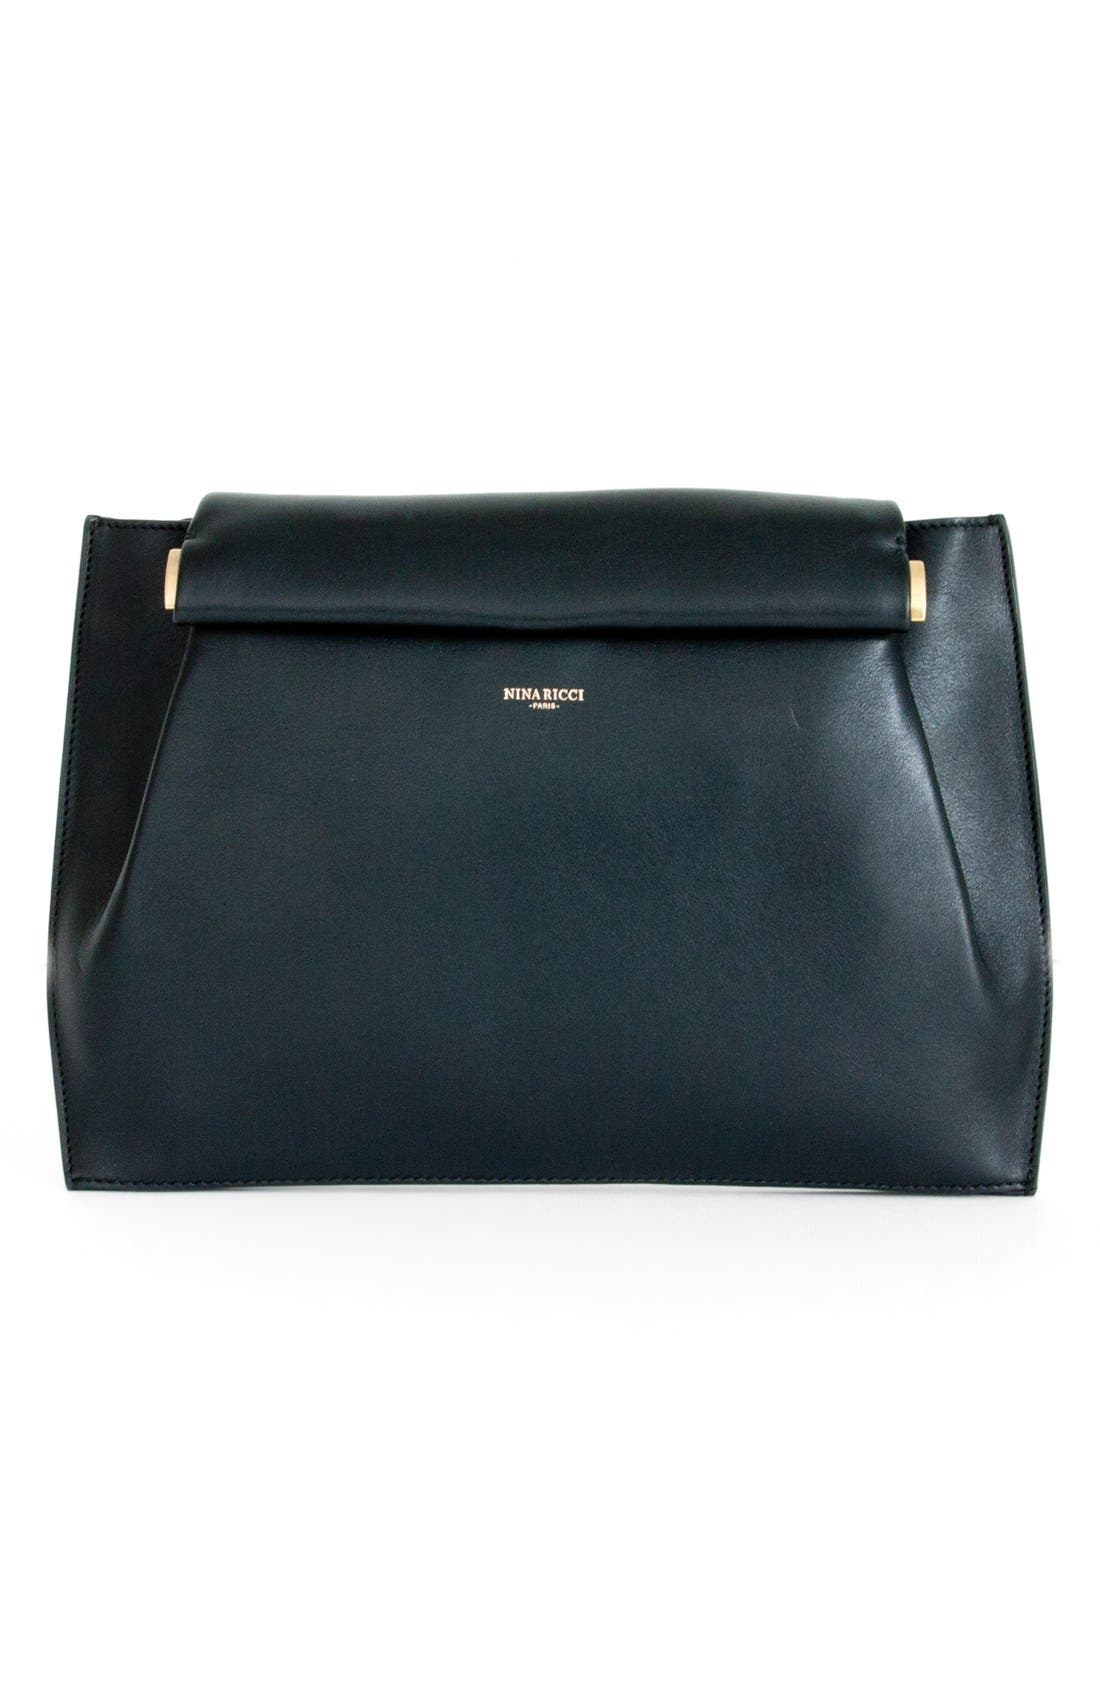 Alternate Image 1 Selected - Nina Ricci 'Thais' Leather Clutch